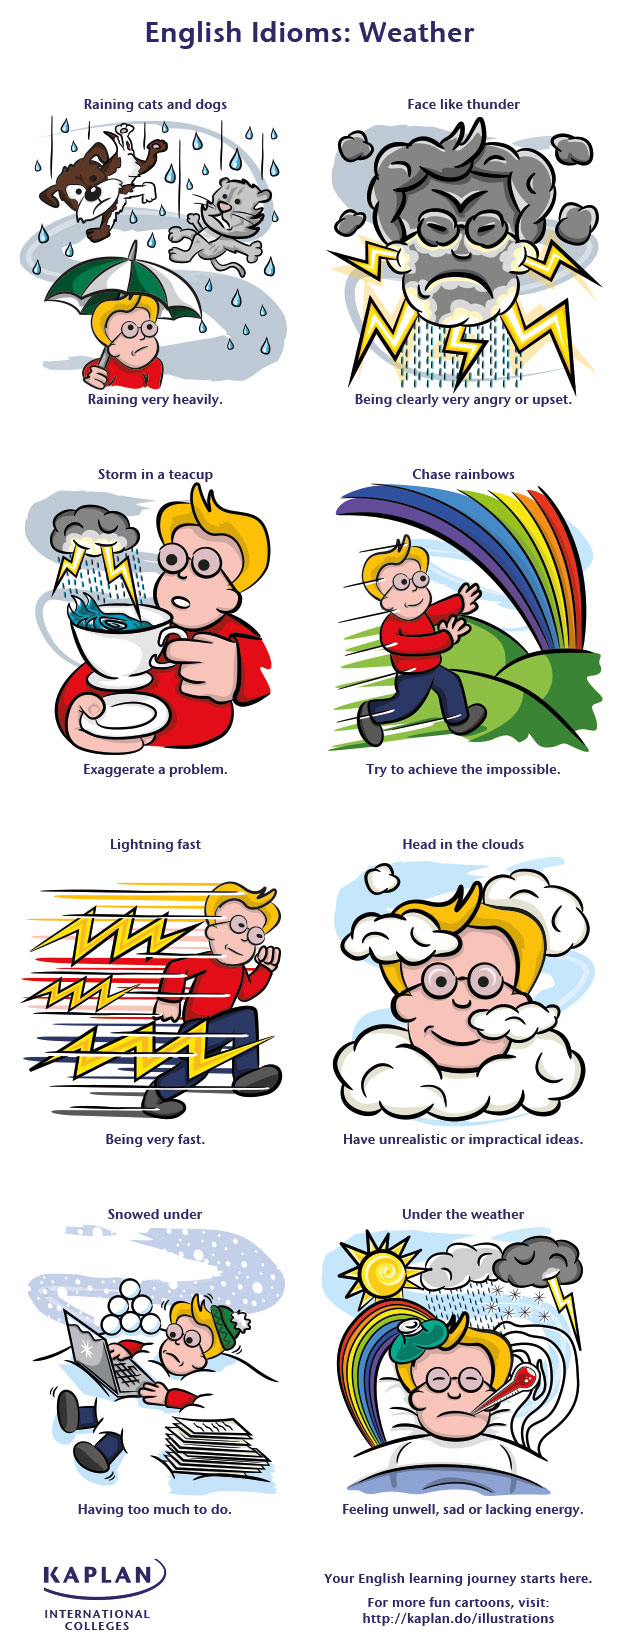 http://s8.picofile.com/file/8281294726/weather_idioms.jpg